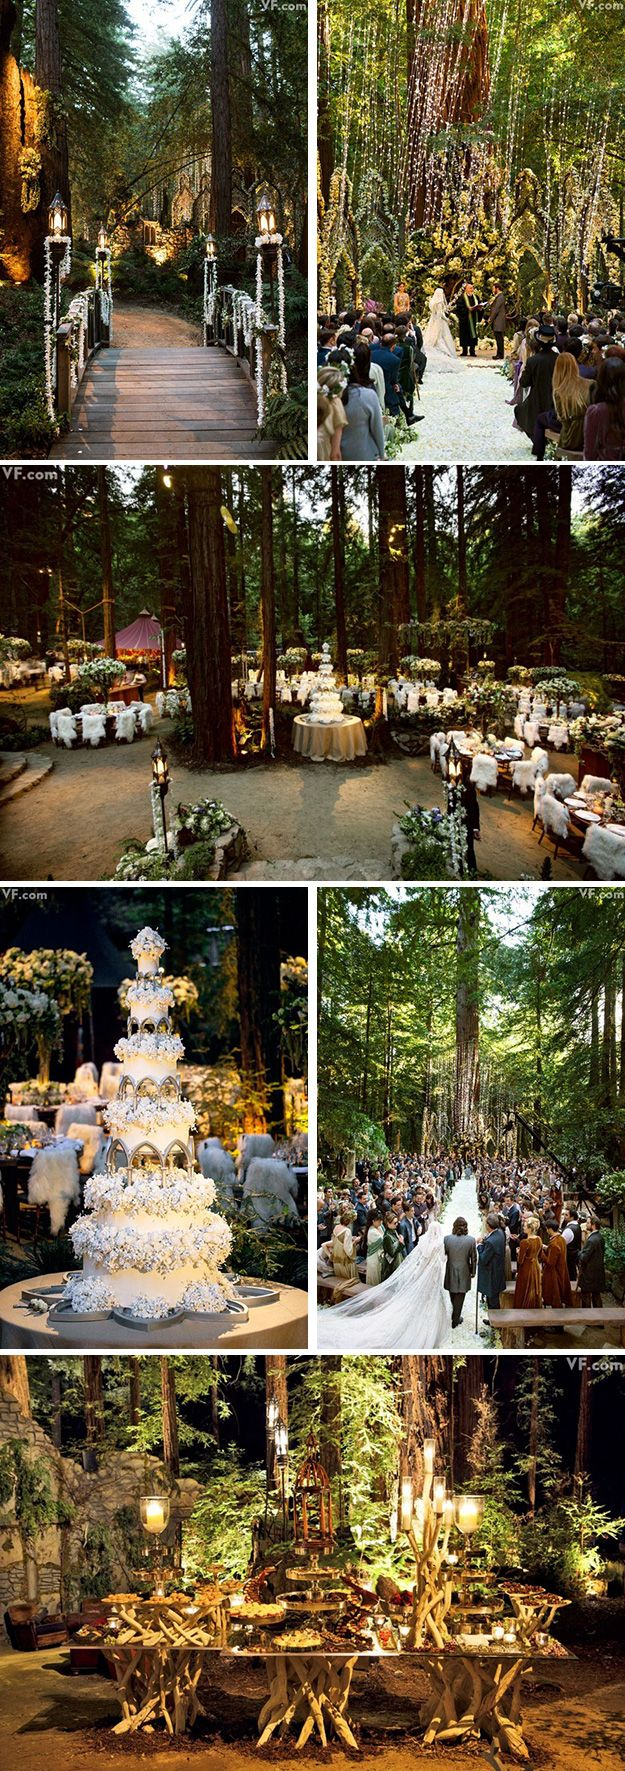 Game of thrones themed wedding design and decor chwv coisas game of thrones themed wedding design and decor chwv junglespirit Images